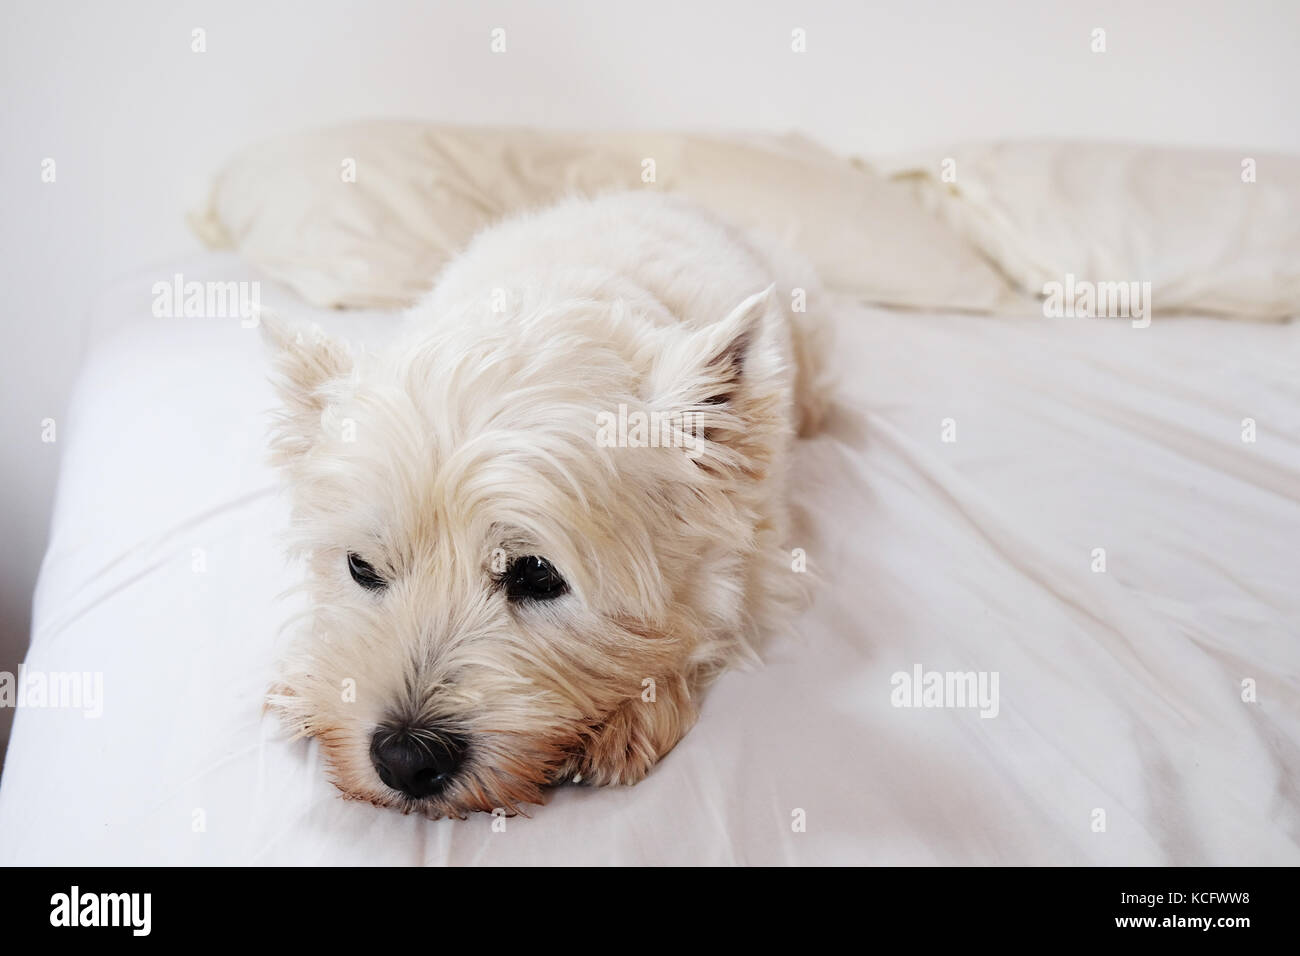 bored, grumpy or tired west highland white terrier westie dog on unmade messy bed with white sheets and white pillows - Stock Image